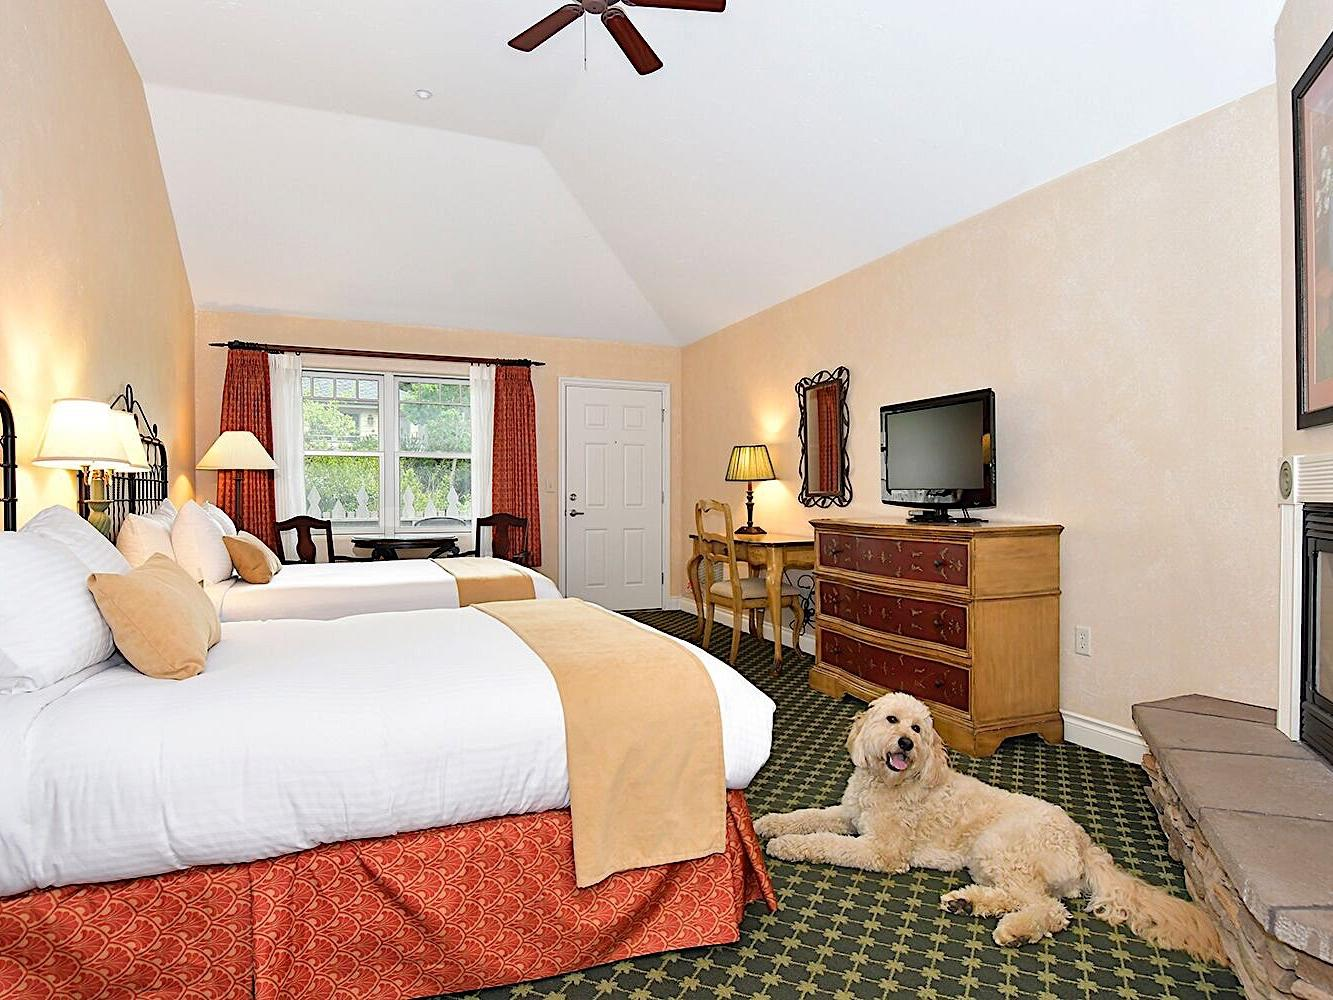 Double queen pet-friendly bedroom